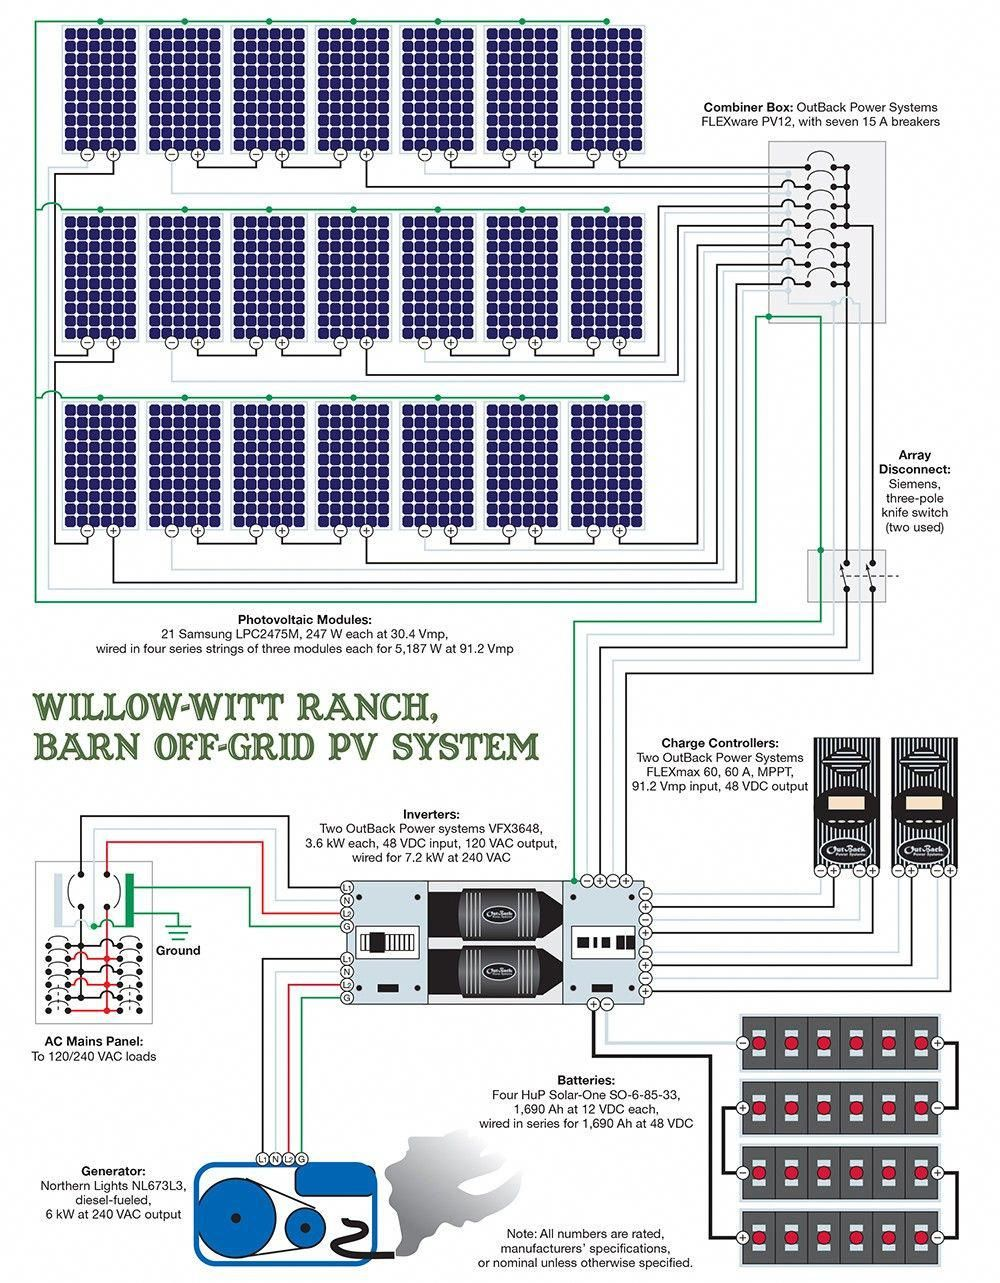 Solar Wiringiagram Off Grid Power Tied Panel Inverter Tie ... on pv system block diagram, pv inverter diagram, grid connection diagram, solar panel diagram, residential pv system diagram, solar array diagram, pv system voltage, solar system diagram,